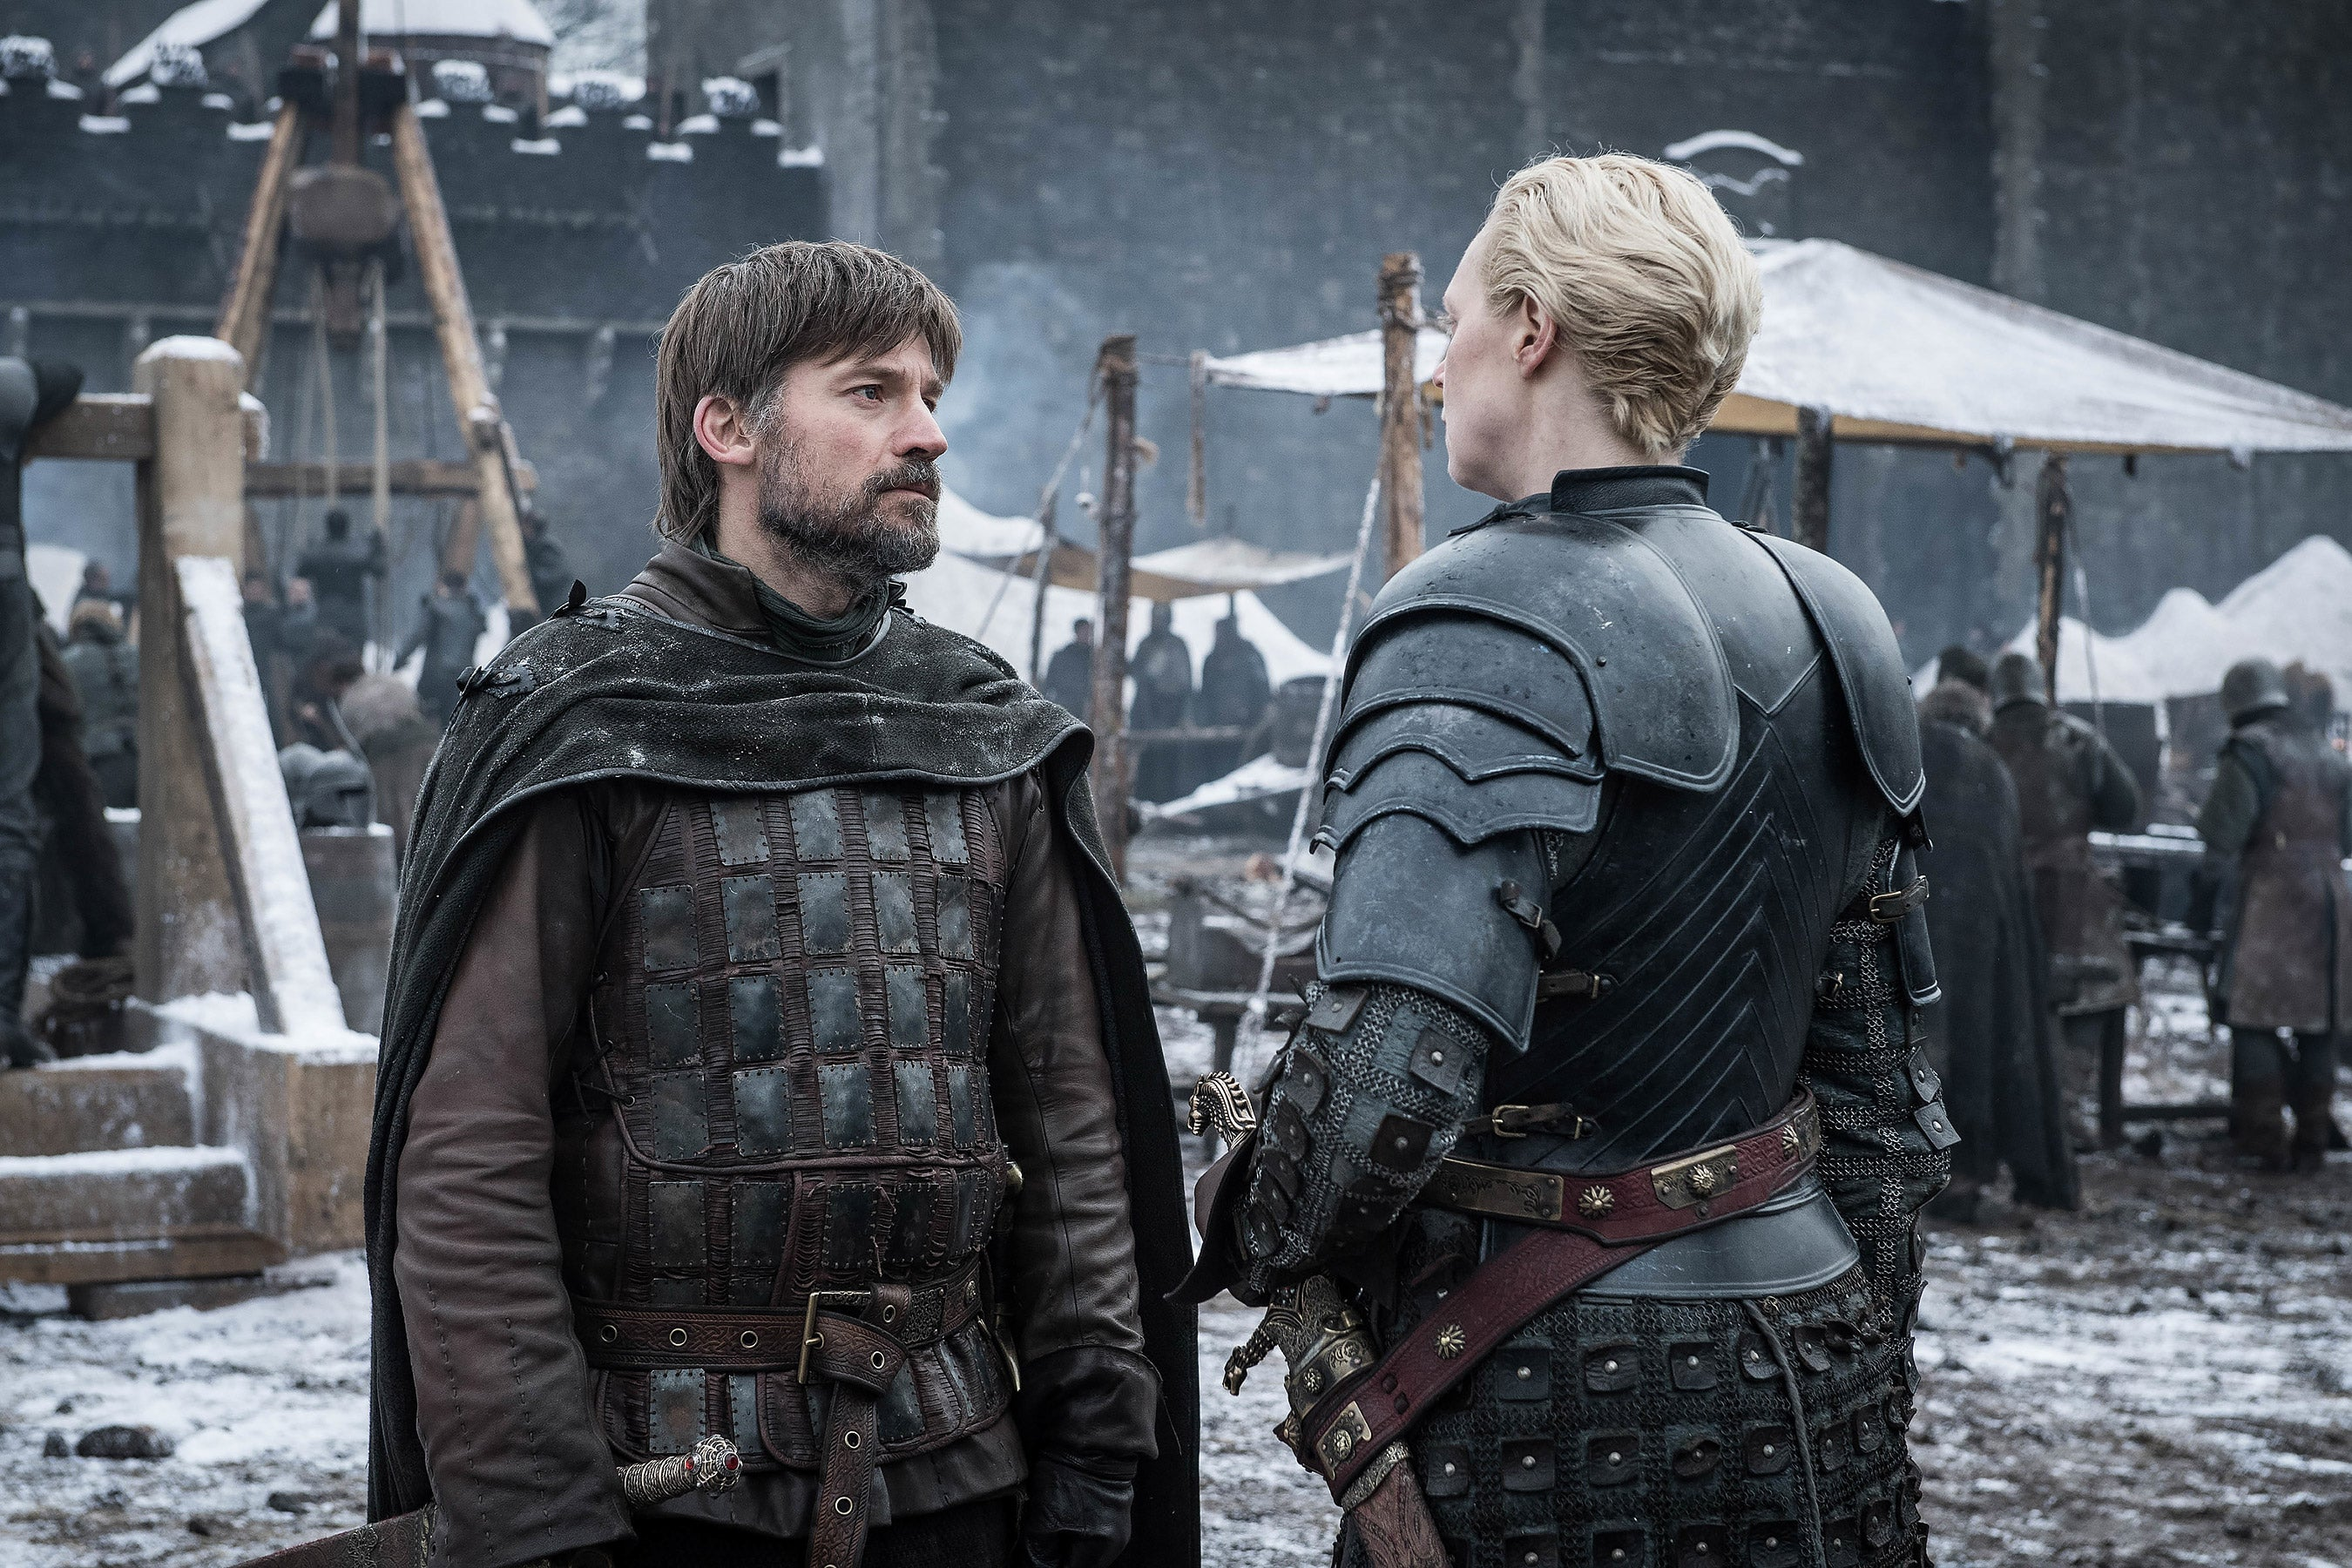 game of thrones season 8 episode 4 Jaime Lannister Brienne Of Tarth